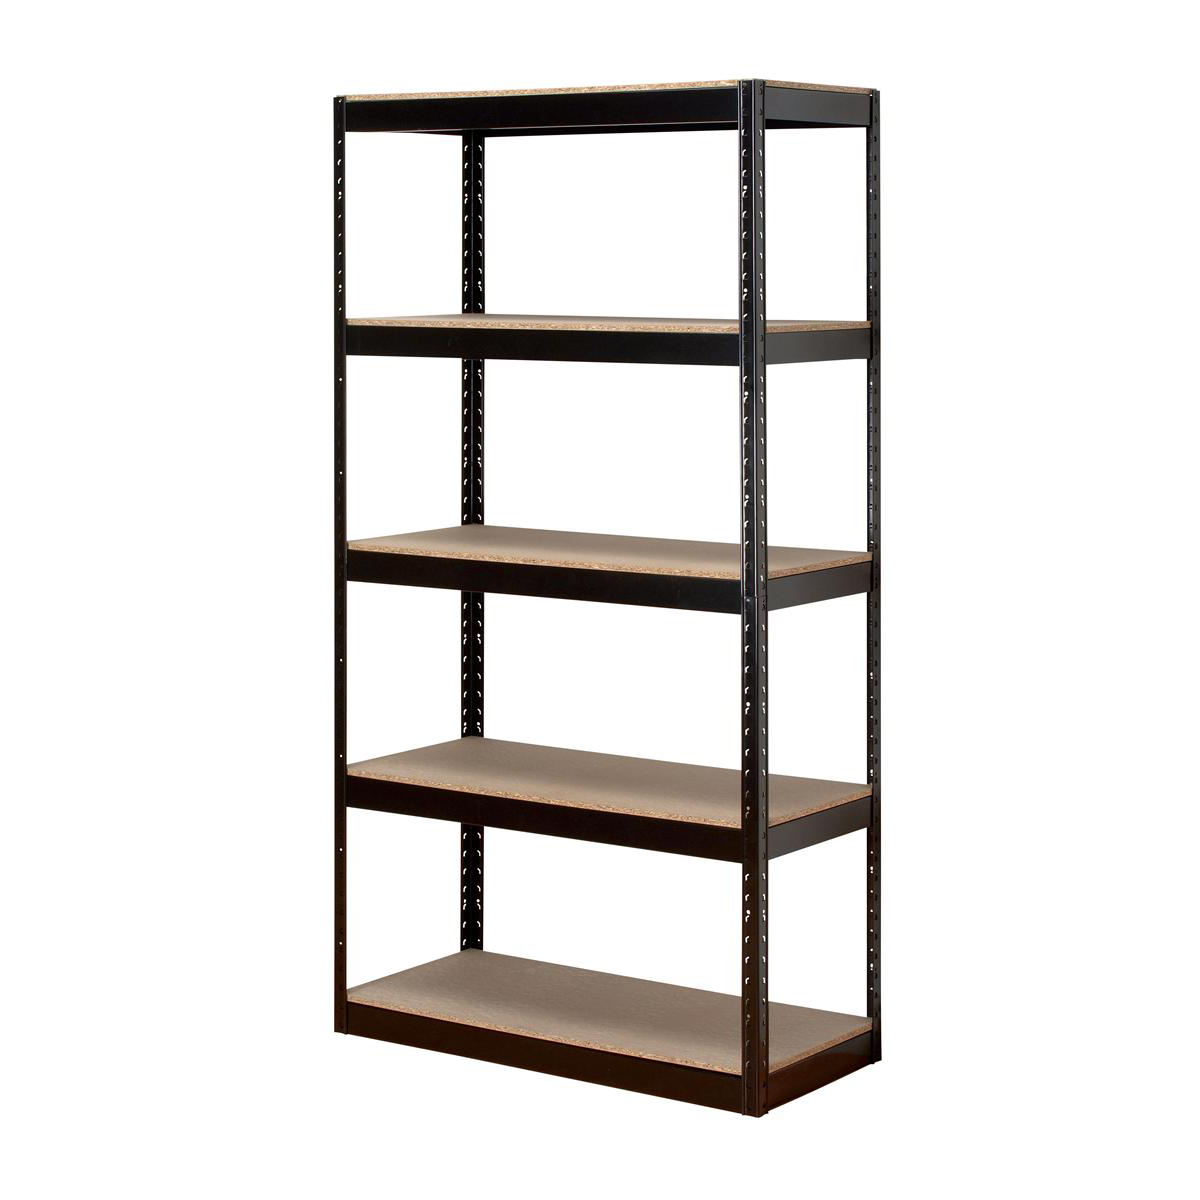 Trexus Storage Shelving Unit Heavy-duty Boltless 5 Shelves Capacity 150kg Black Ref SP414581